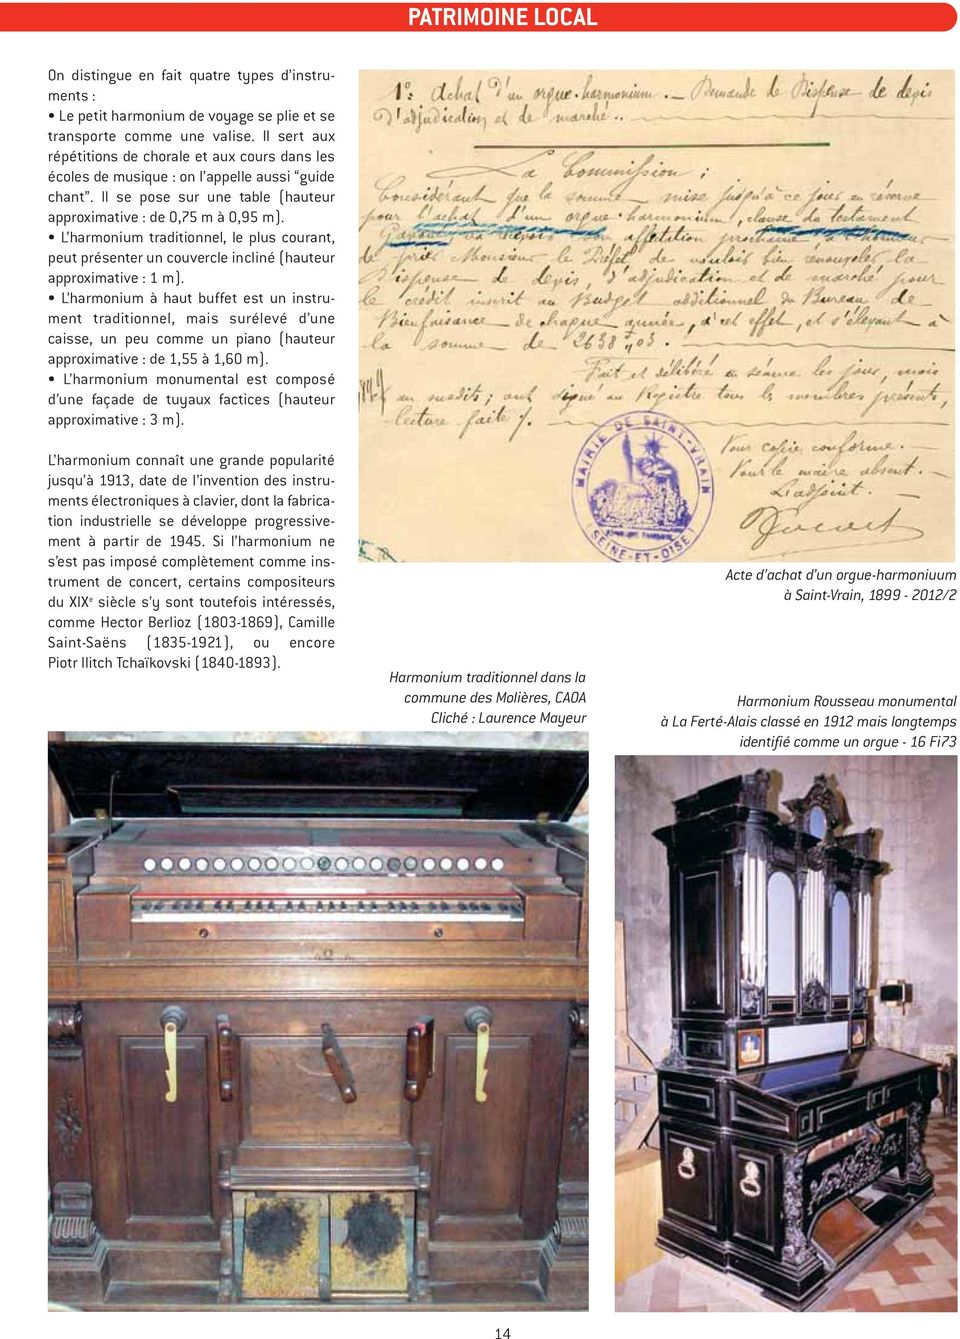 L harmonium traditionnel, le plus courant, peut présenter un couvercle incliné (hauteur approximative : 1 m).